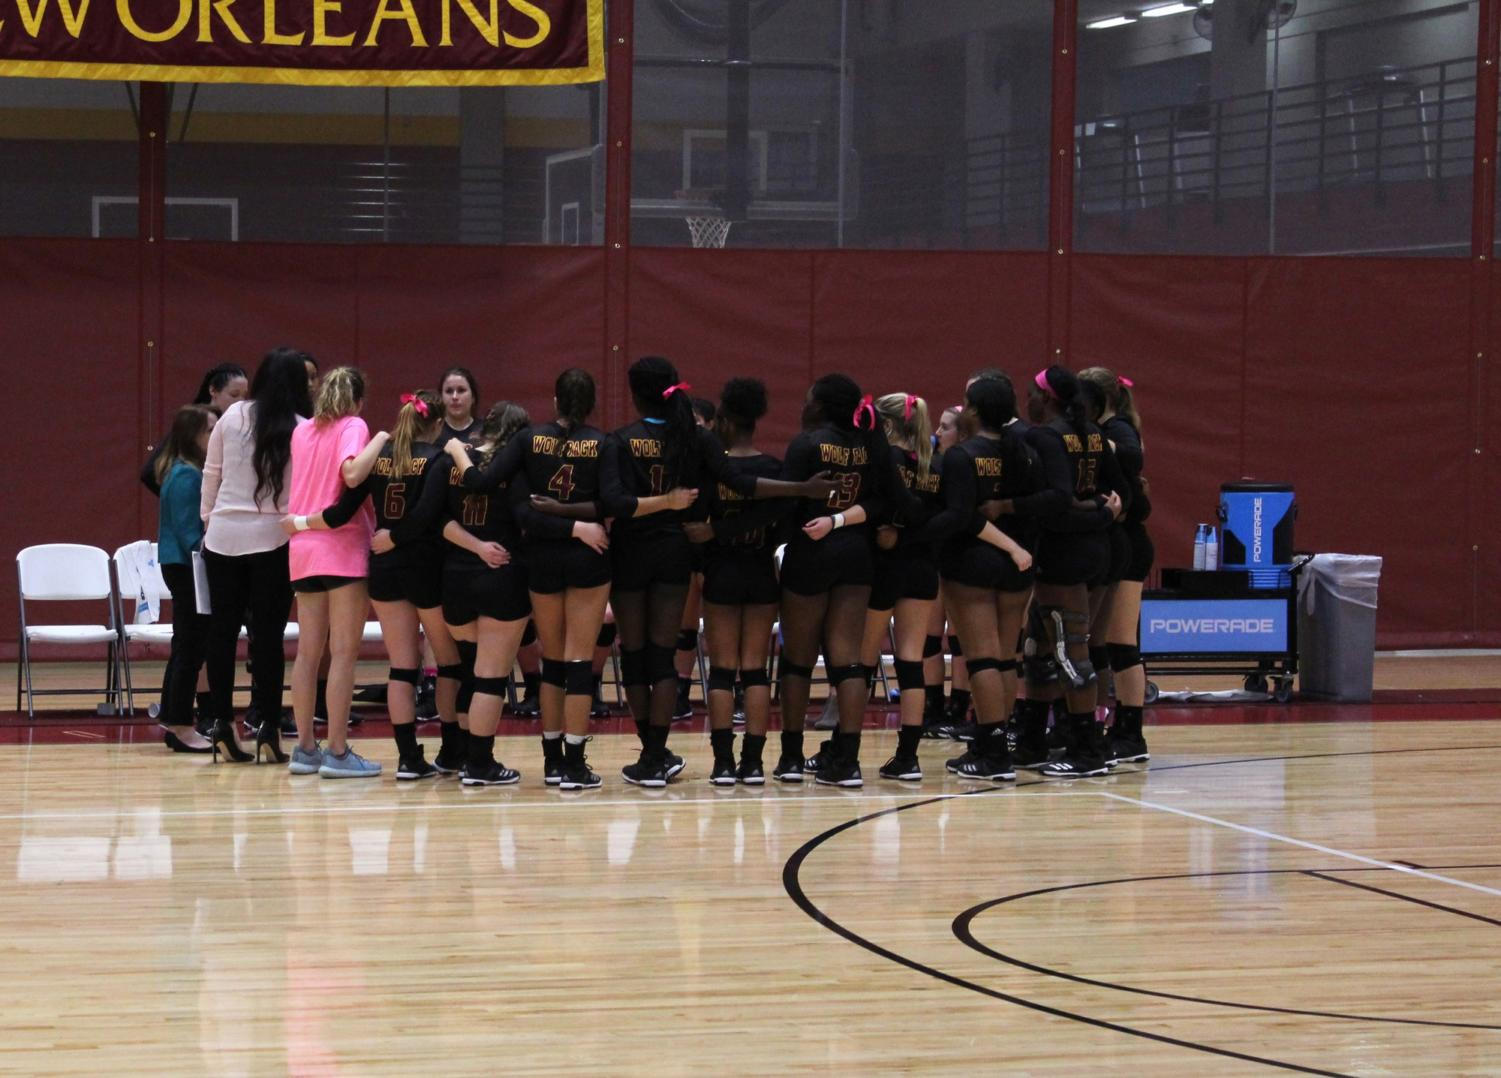 The Loyola volleyball team gathers in a group huddle during the game. The 2017 Loyola volleyball team plans to compete against the 2002 volleyball team on January 19 at 7pm at the Den. Photo credit: Cristian Orellana